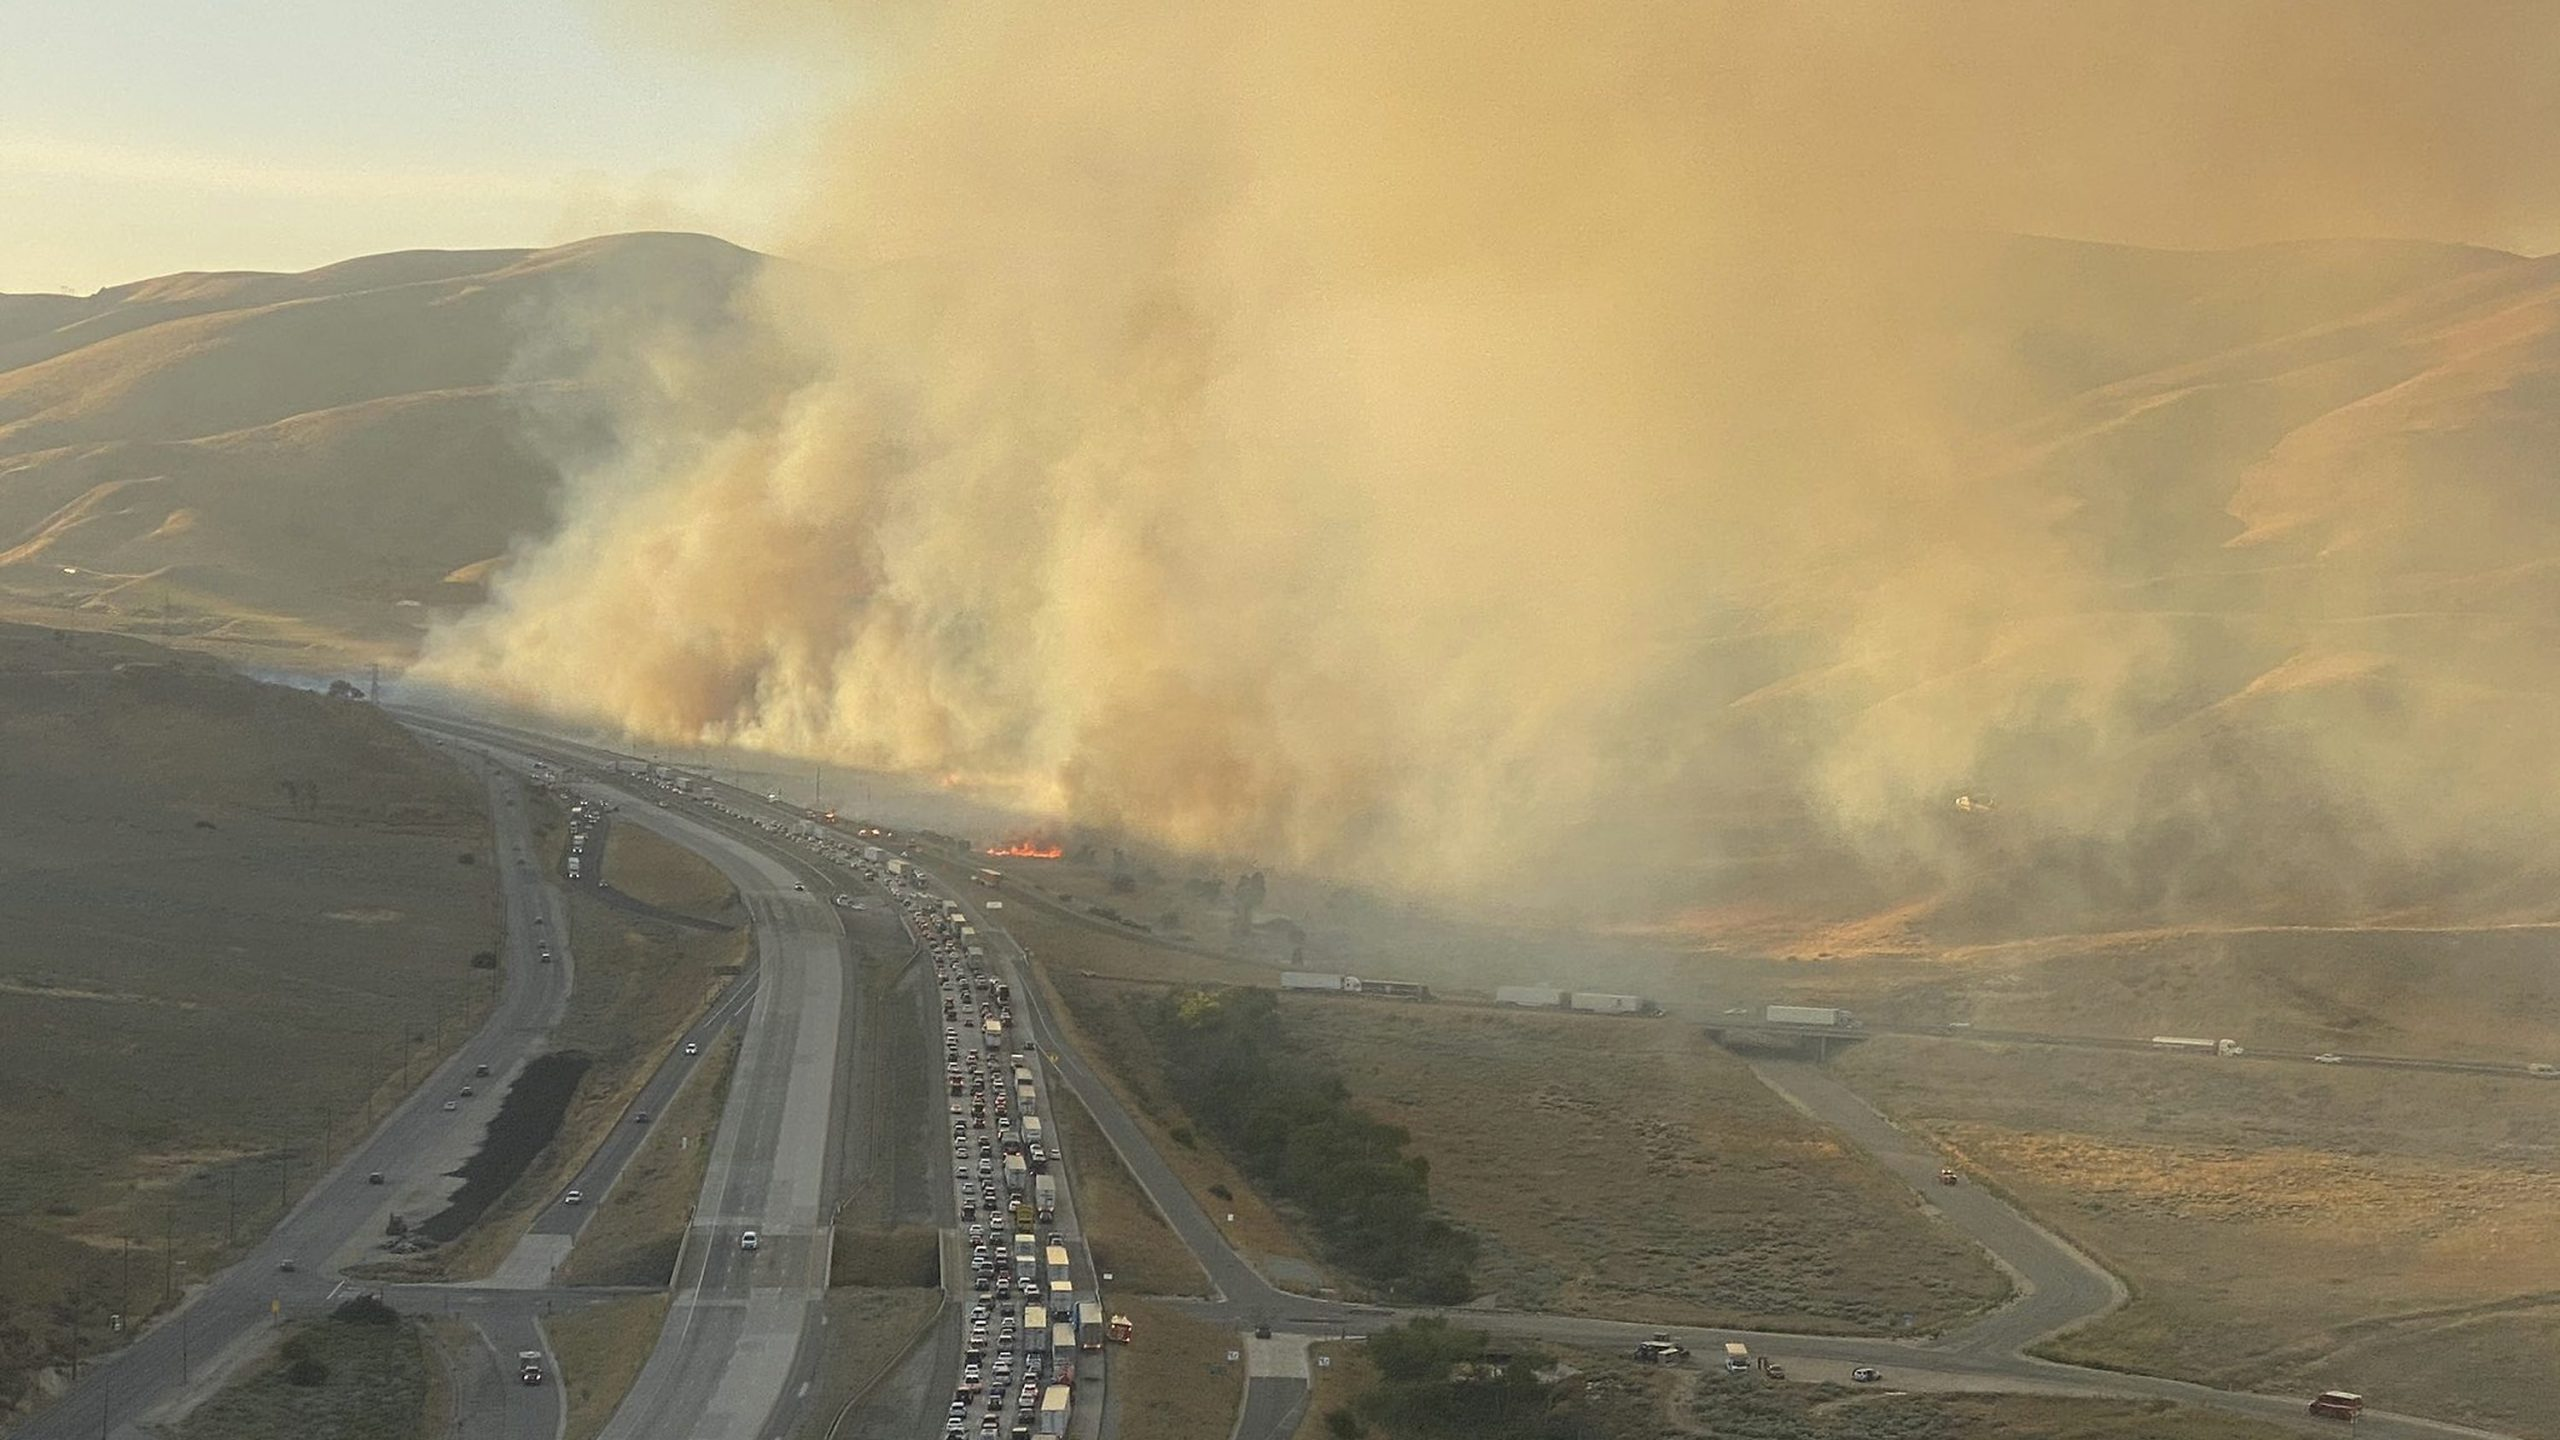 This aerial picture released via @LACoFireAirOps by the Los Angeles County Fire Department Air Operations shows the Tumbleweed Fire along the 5 Freeway in Gorman on July 4, 2021.